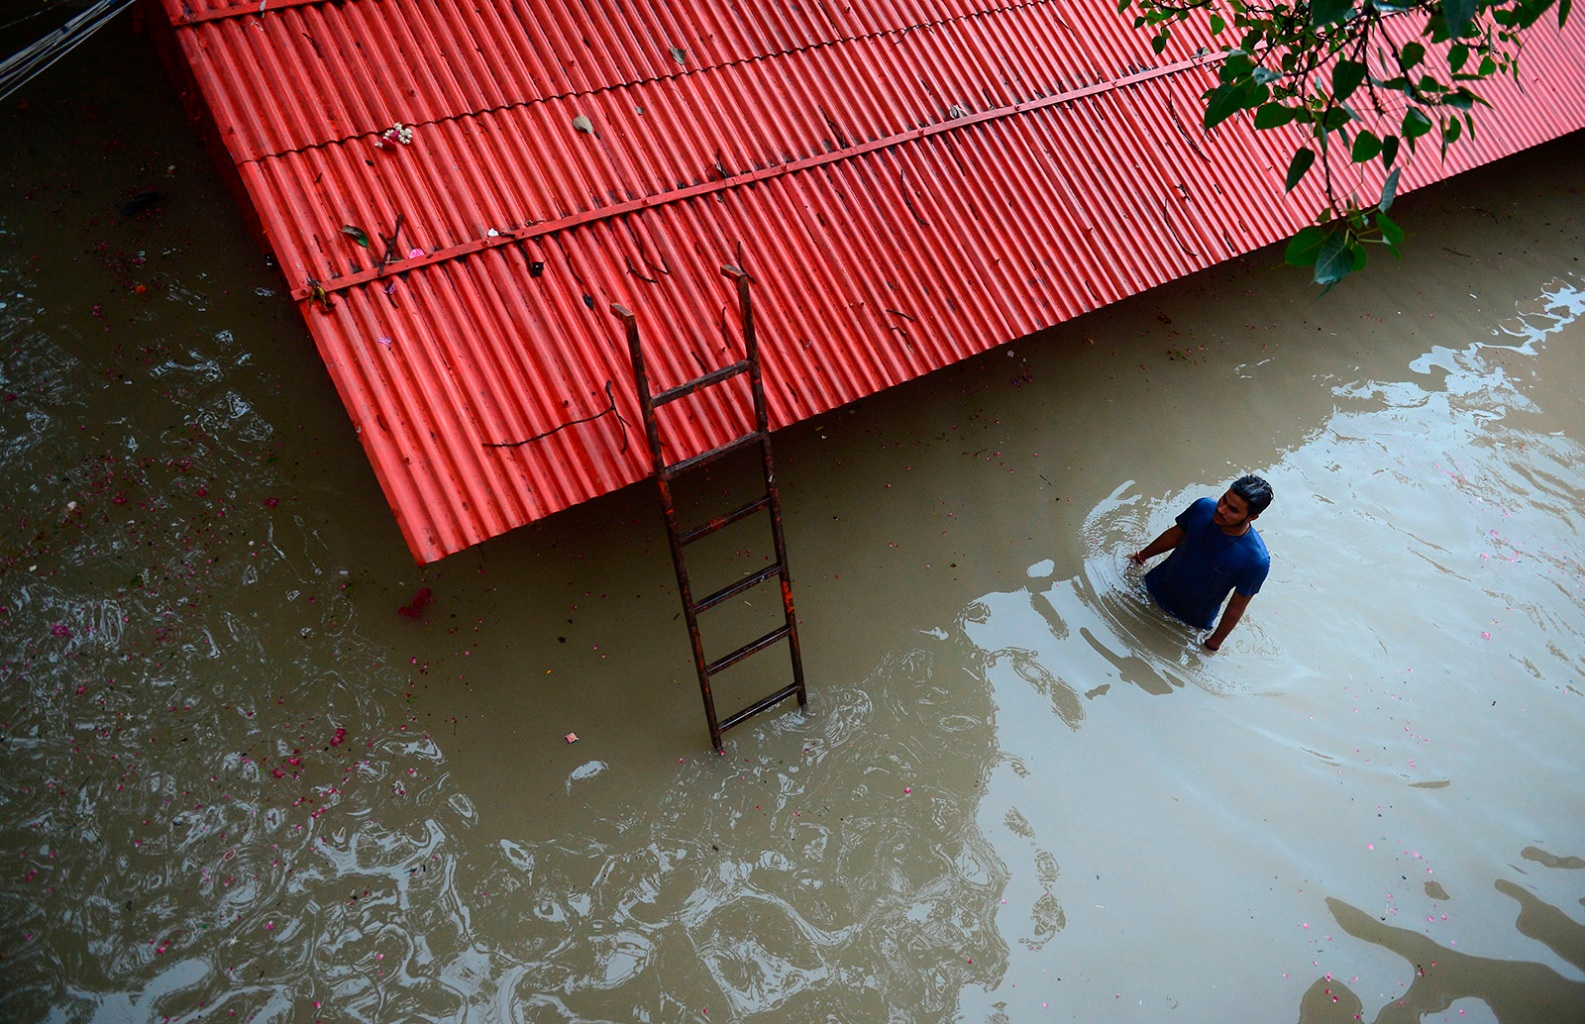 A priest walks inside the submerged Hanuman temple near Sangam following heavy rains in Allahabad, India, on Aug. 19. SANJAY KANOJIA/AFP/Getty Images